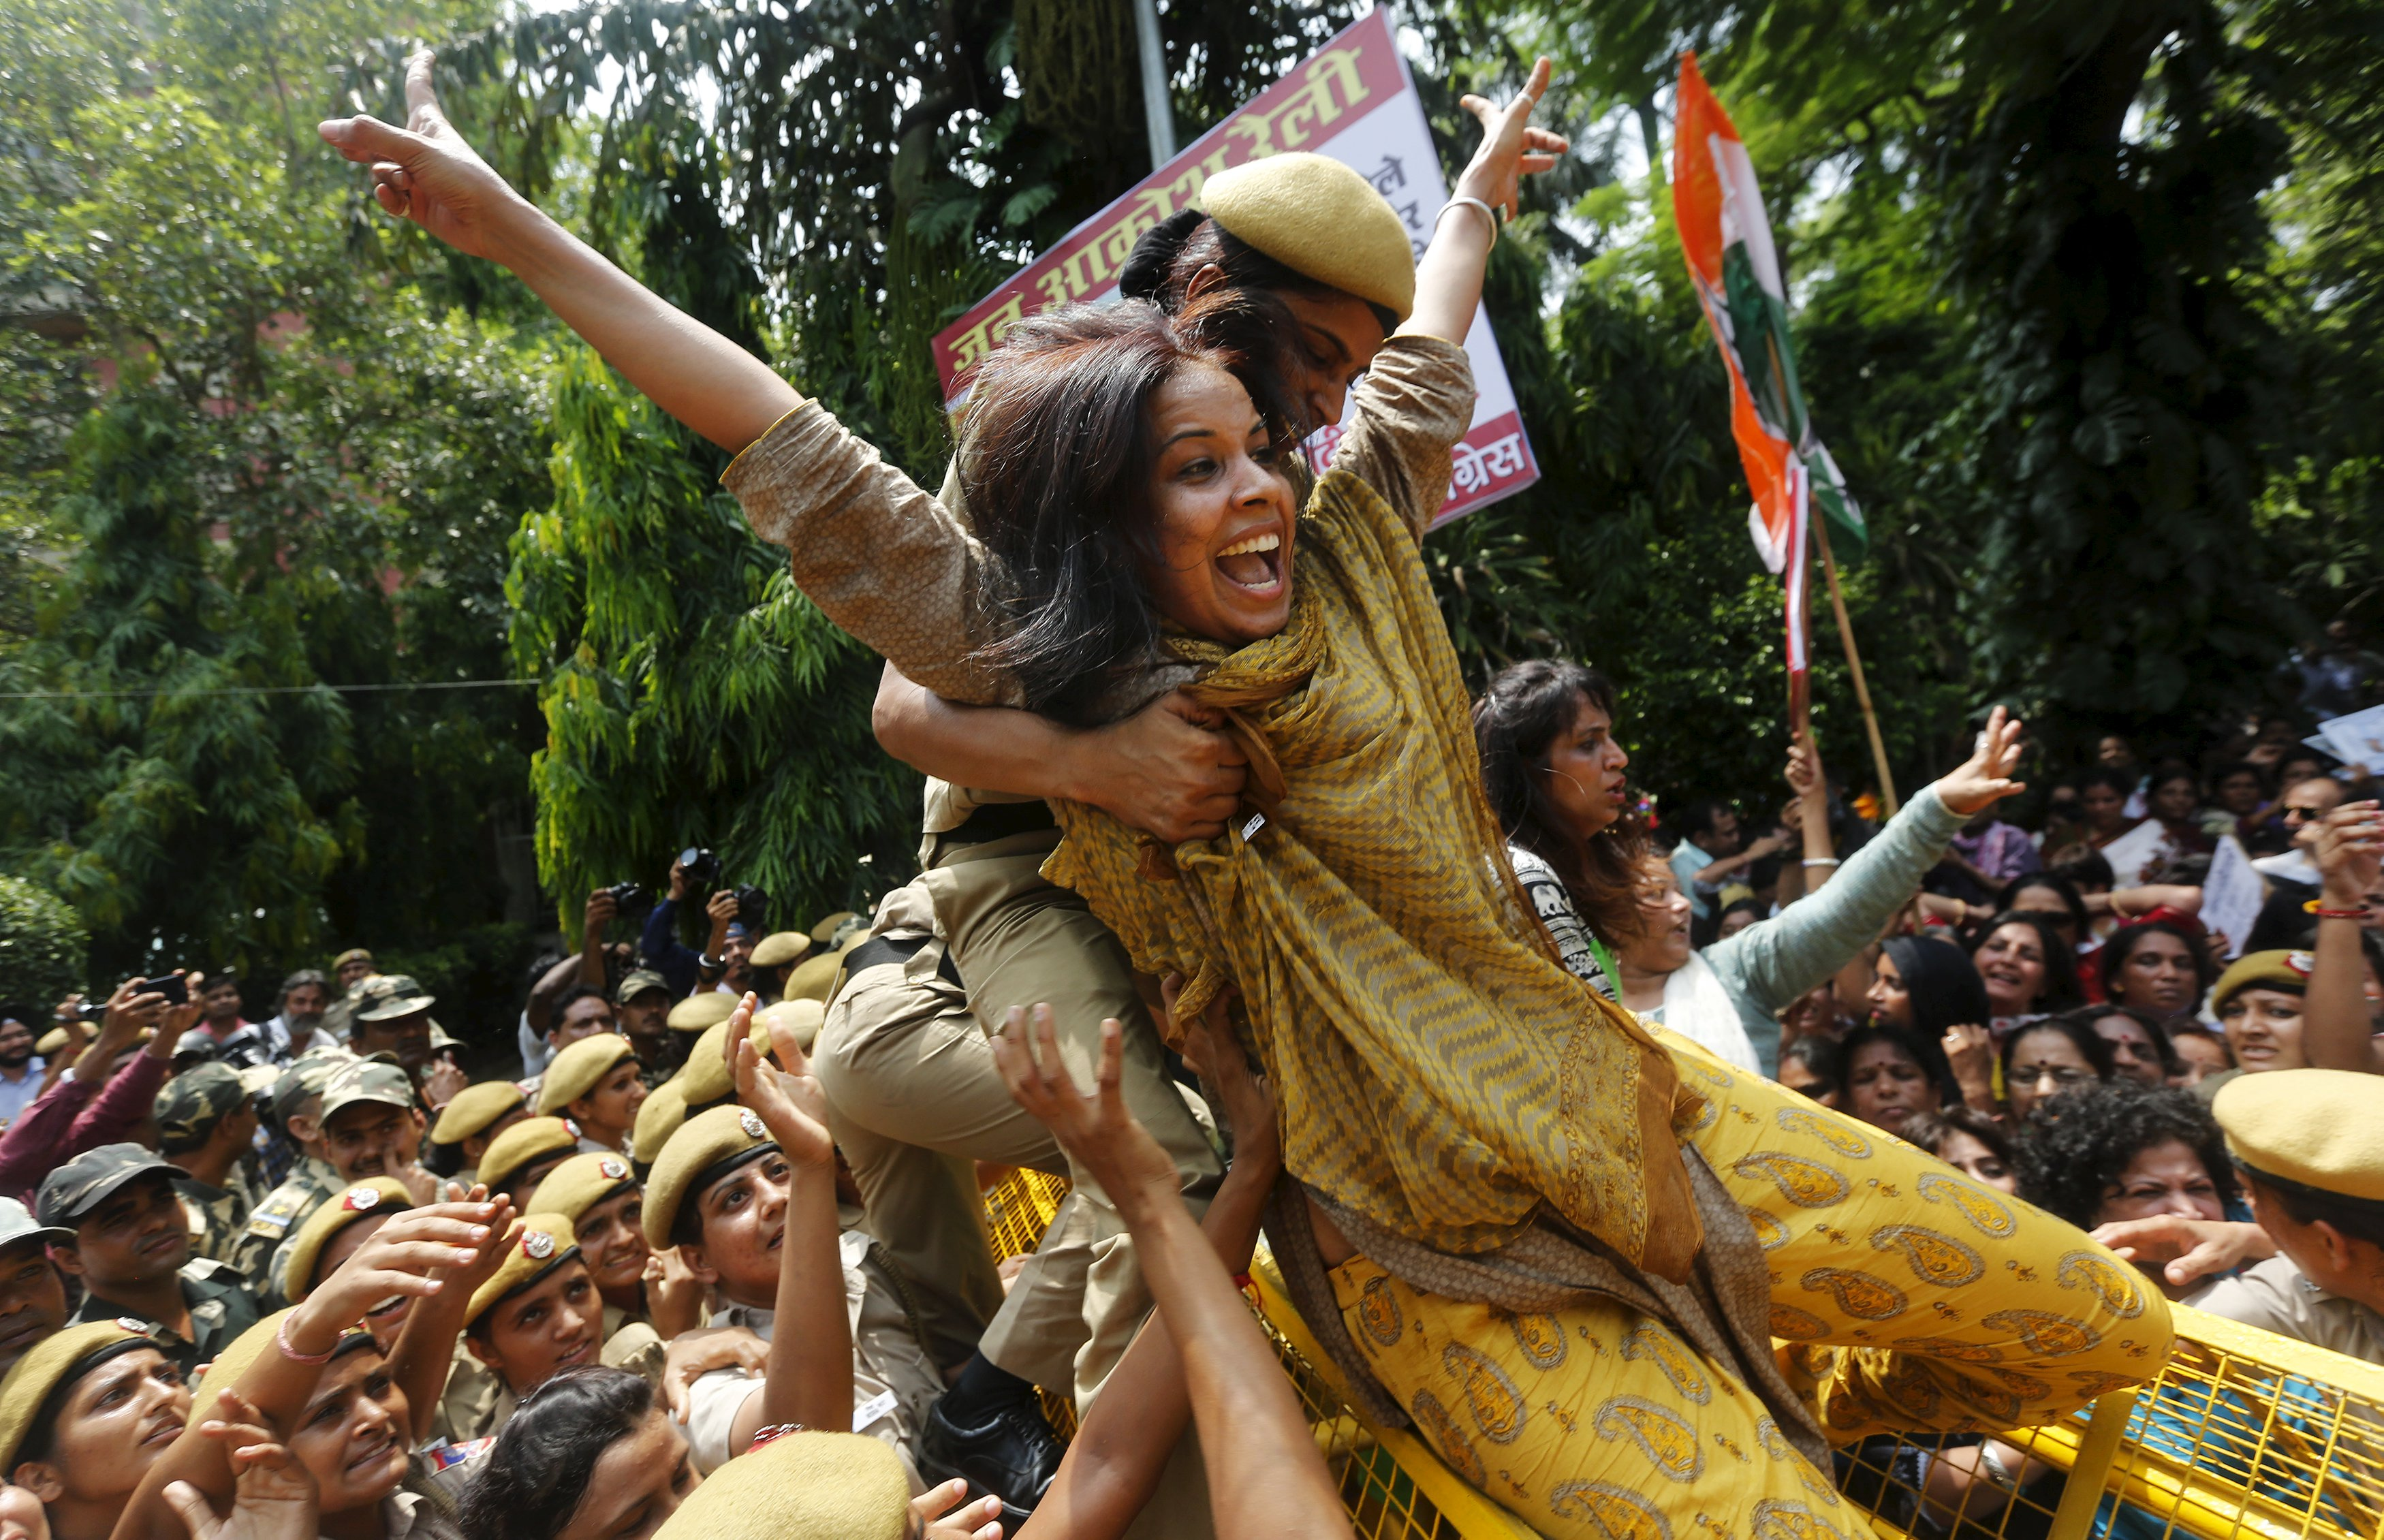 A policewoman trying to stop a member of the All India Mahila Congress, the women's wing of the Congress party, who was trying to cross over a barricade, during a protest against Indian Prime Minister Narendra Modi in New Delhi, on Tuesday. Photo: Reuters